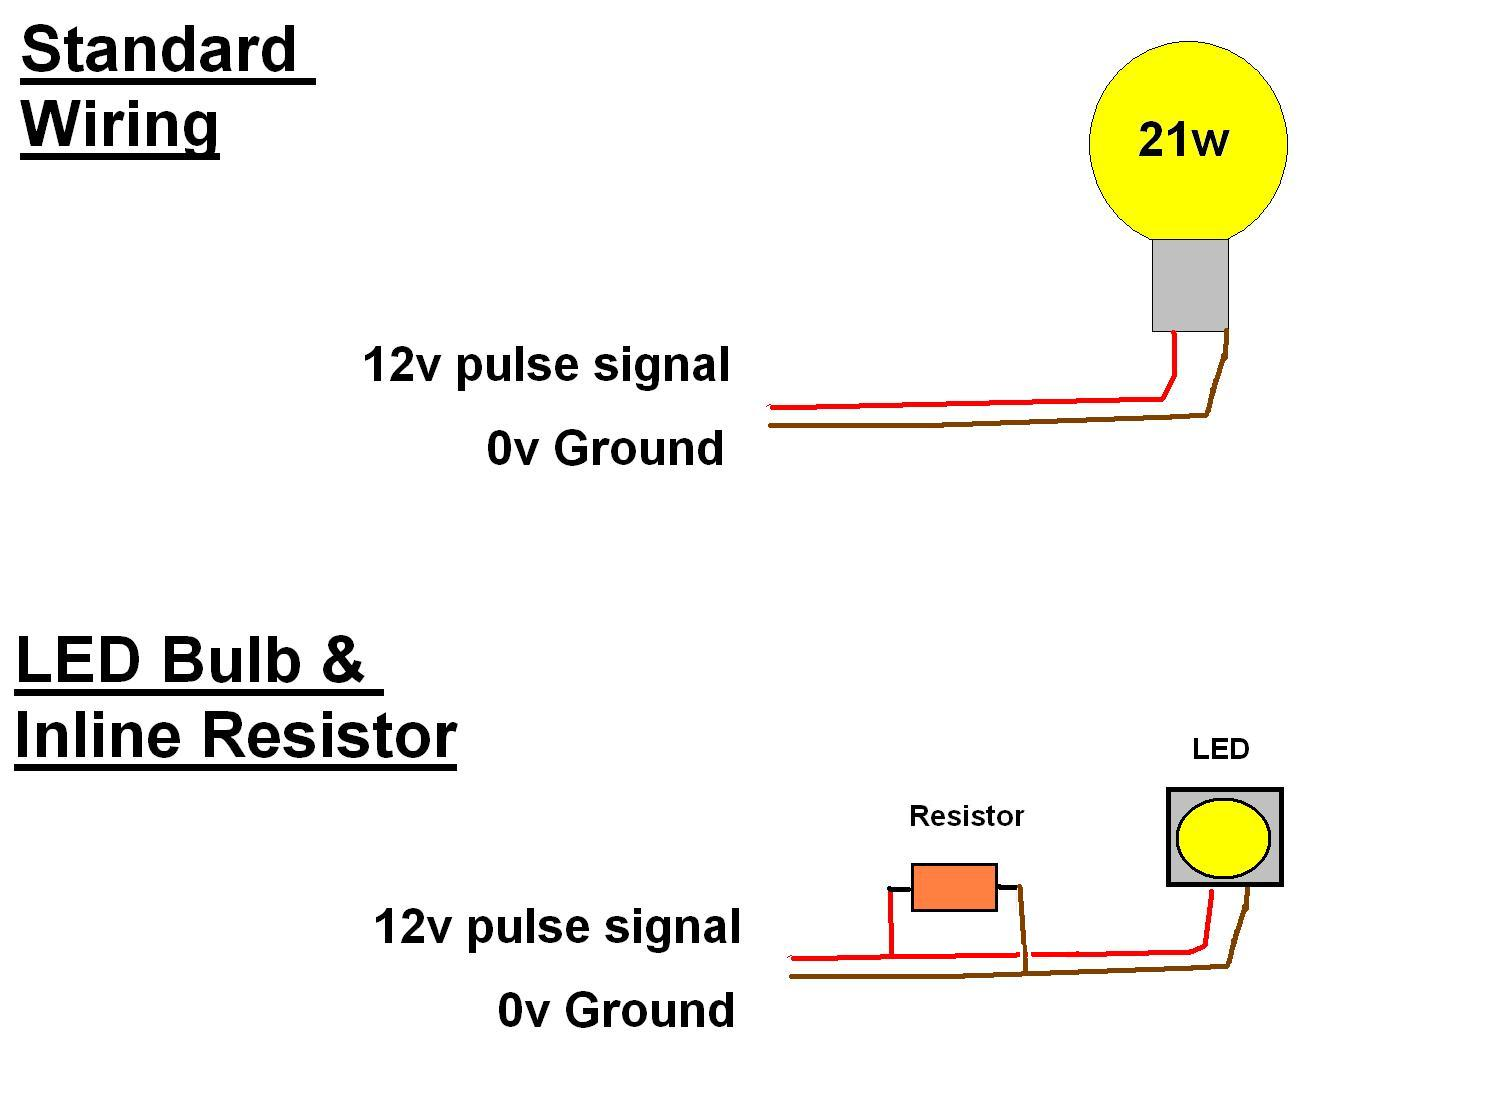 led resistor wiring diagram turn signal bulb best wiring library